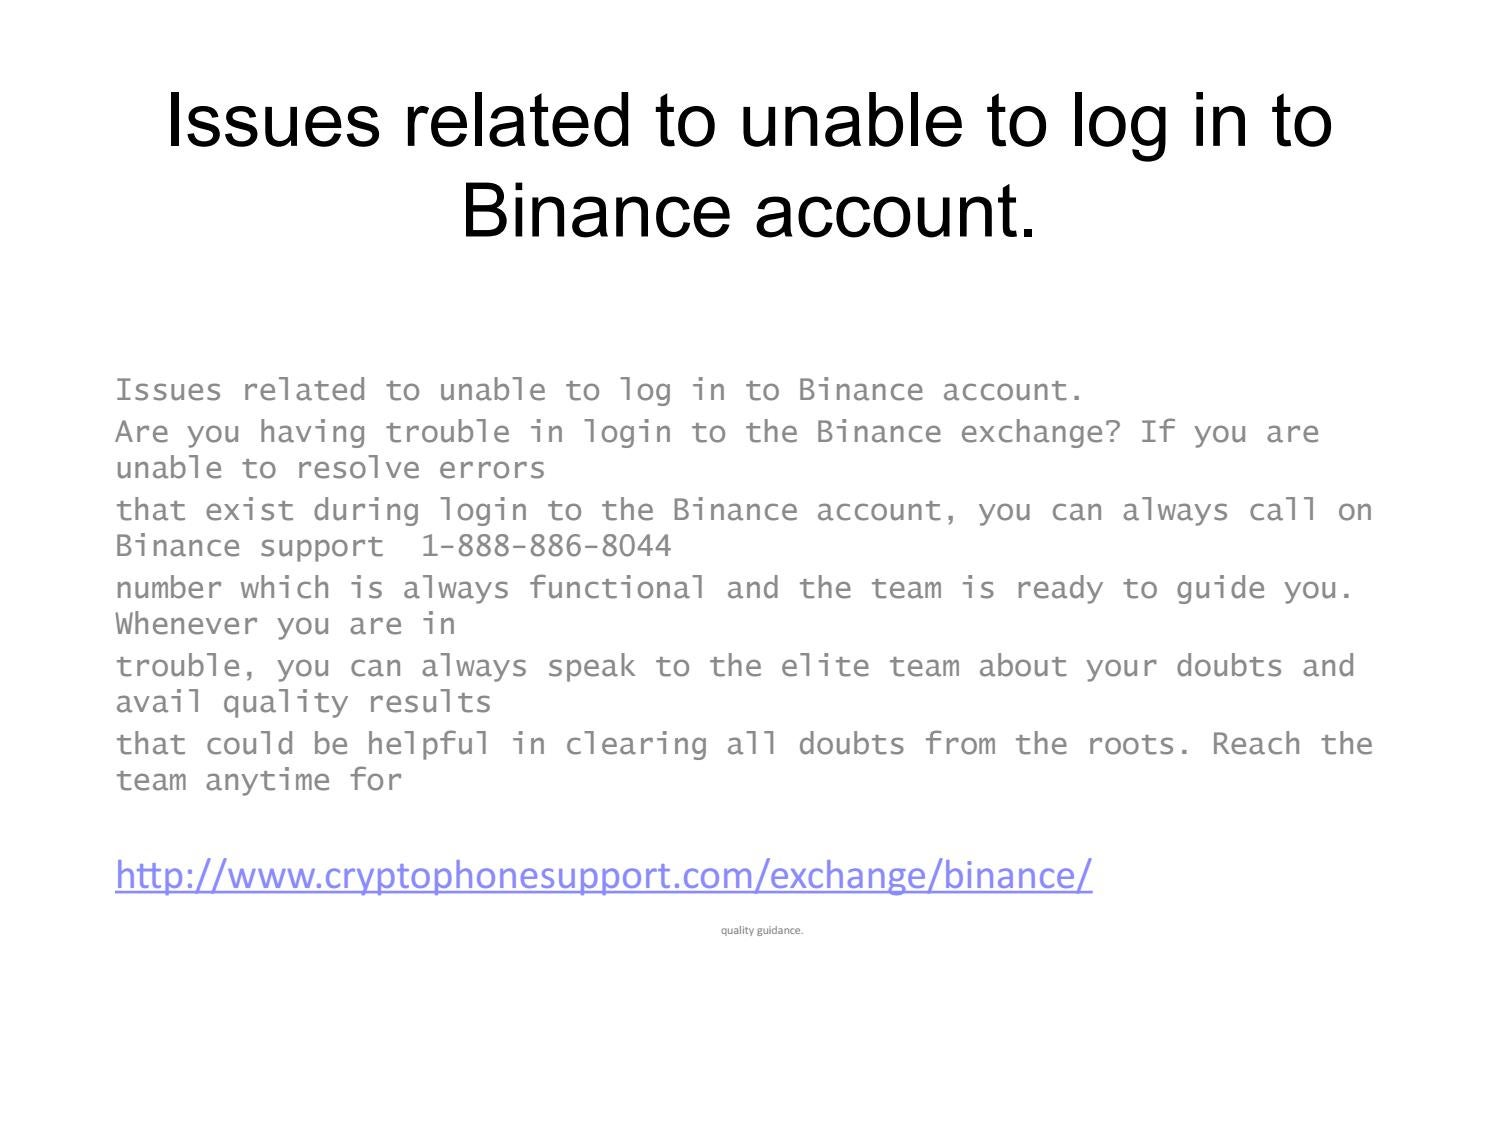 binance contact number